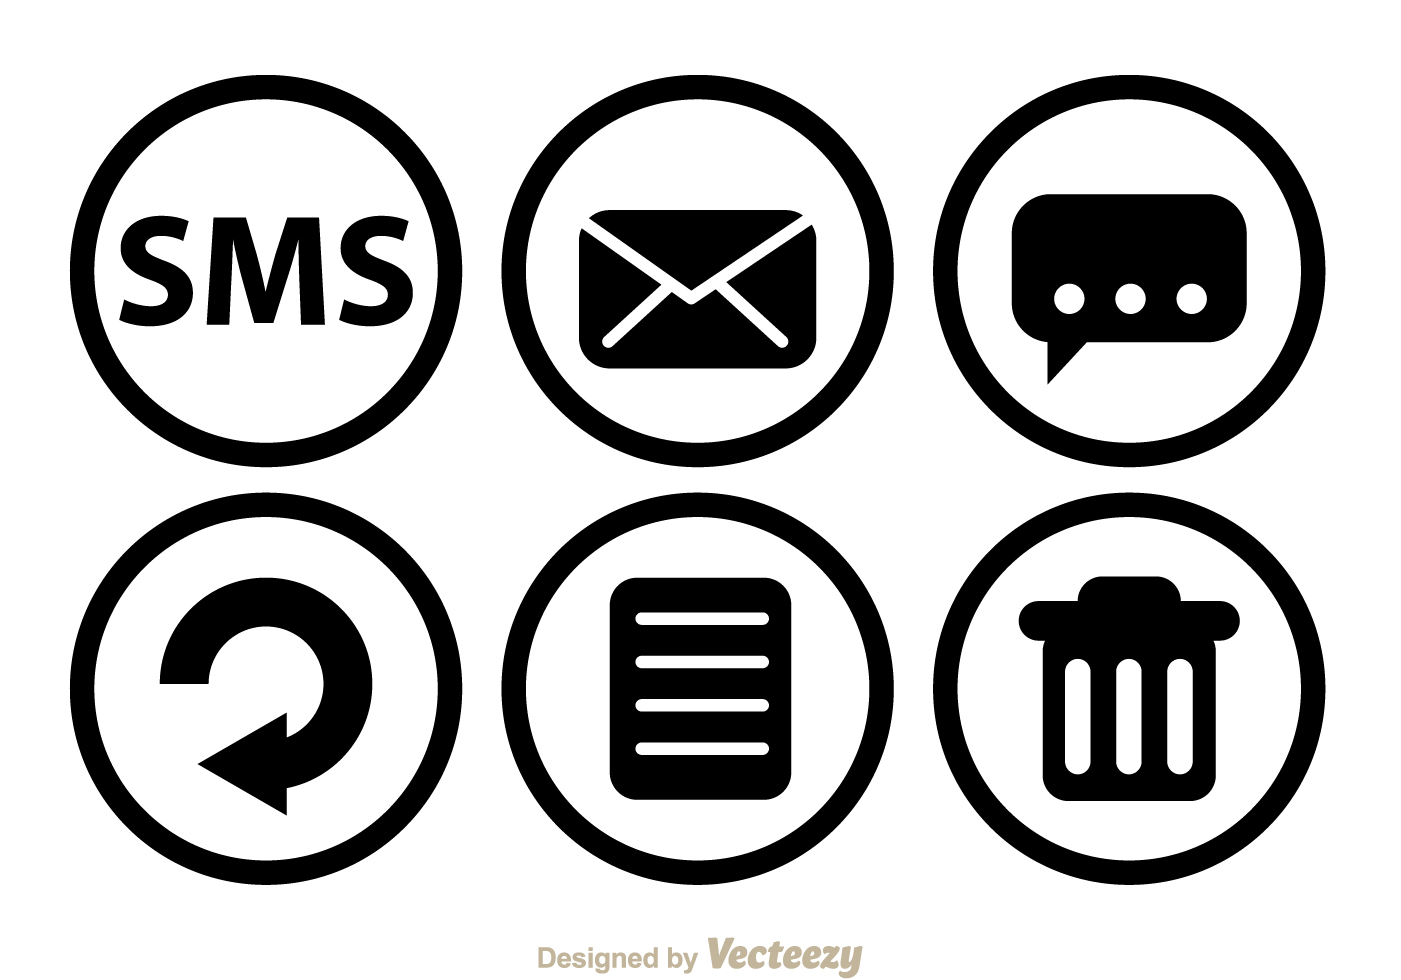 Free vector sms black circle icons 5779 my graphic hunt biocorpaavc Images